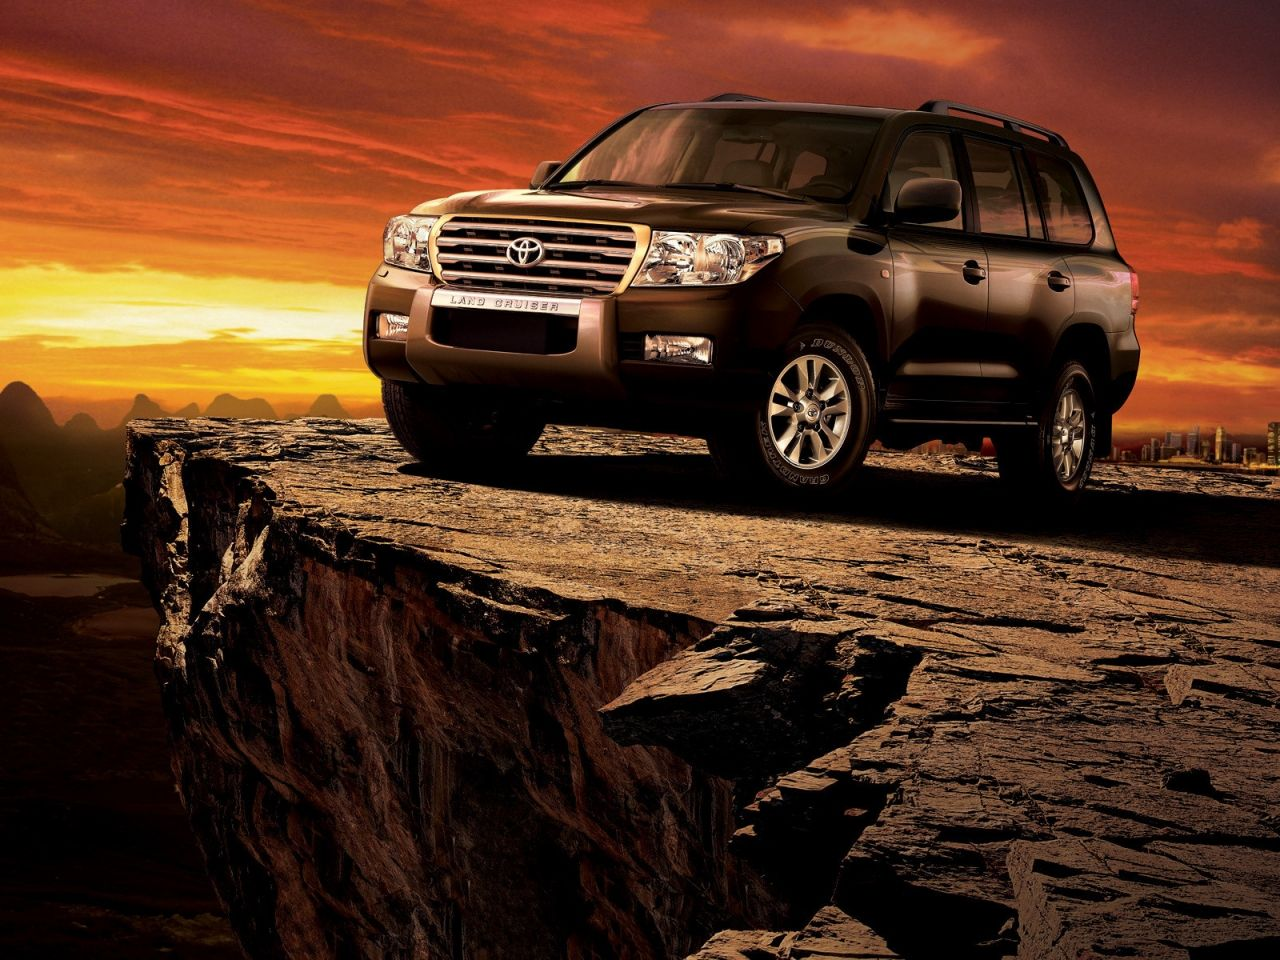 Toyota Land Cruiser Toyota Wallpapers Pinterest Land Cruiser